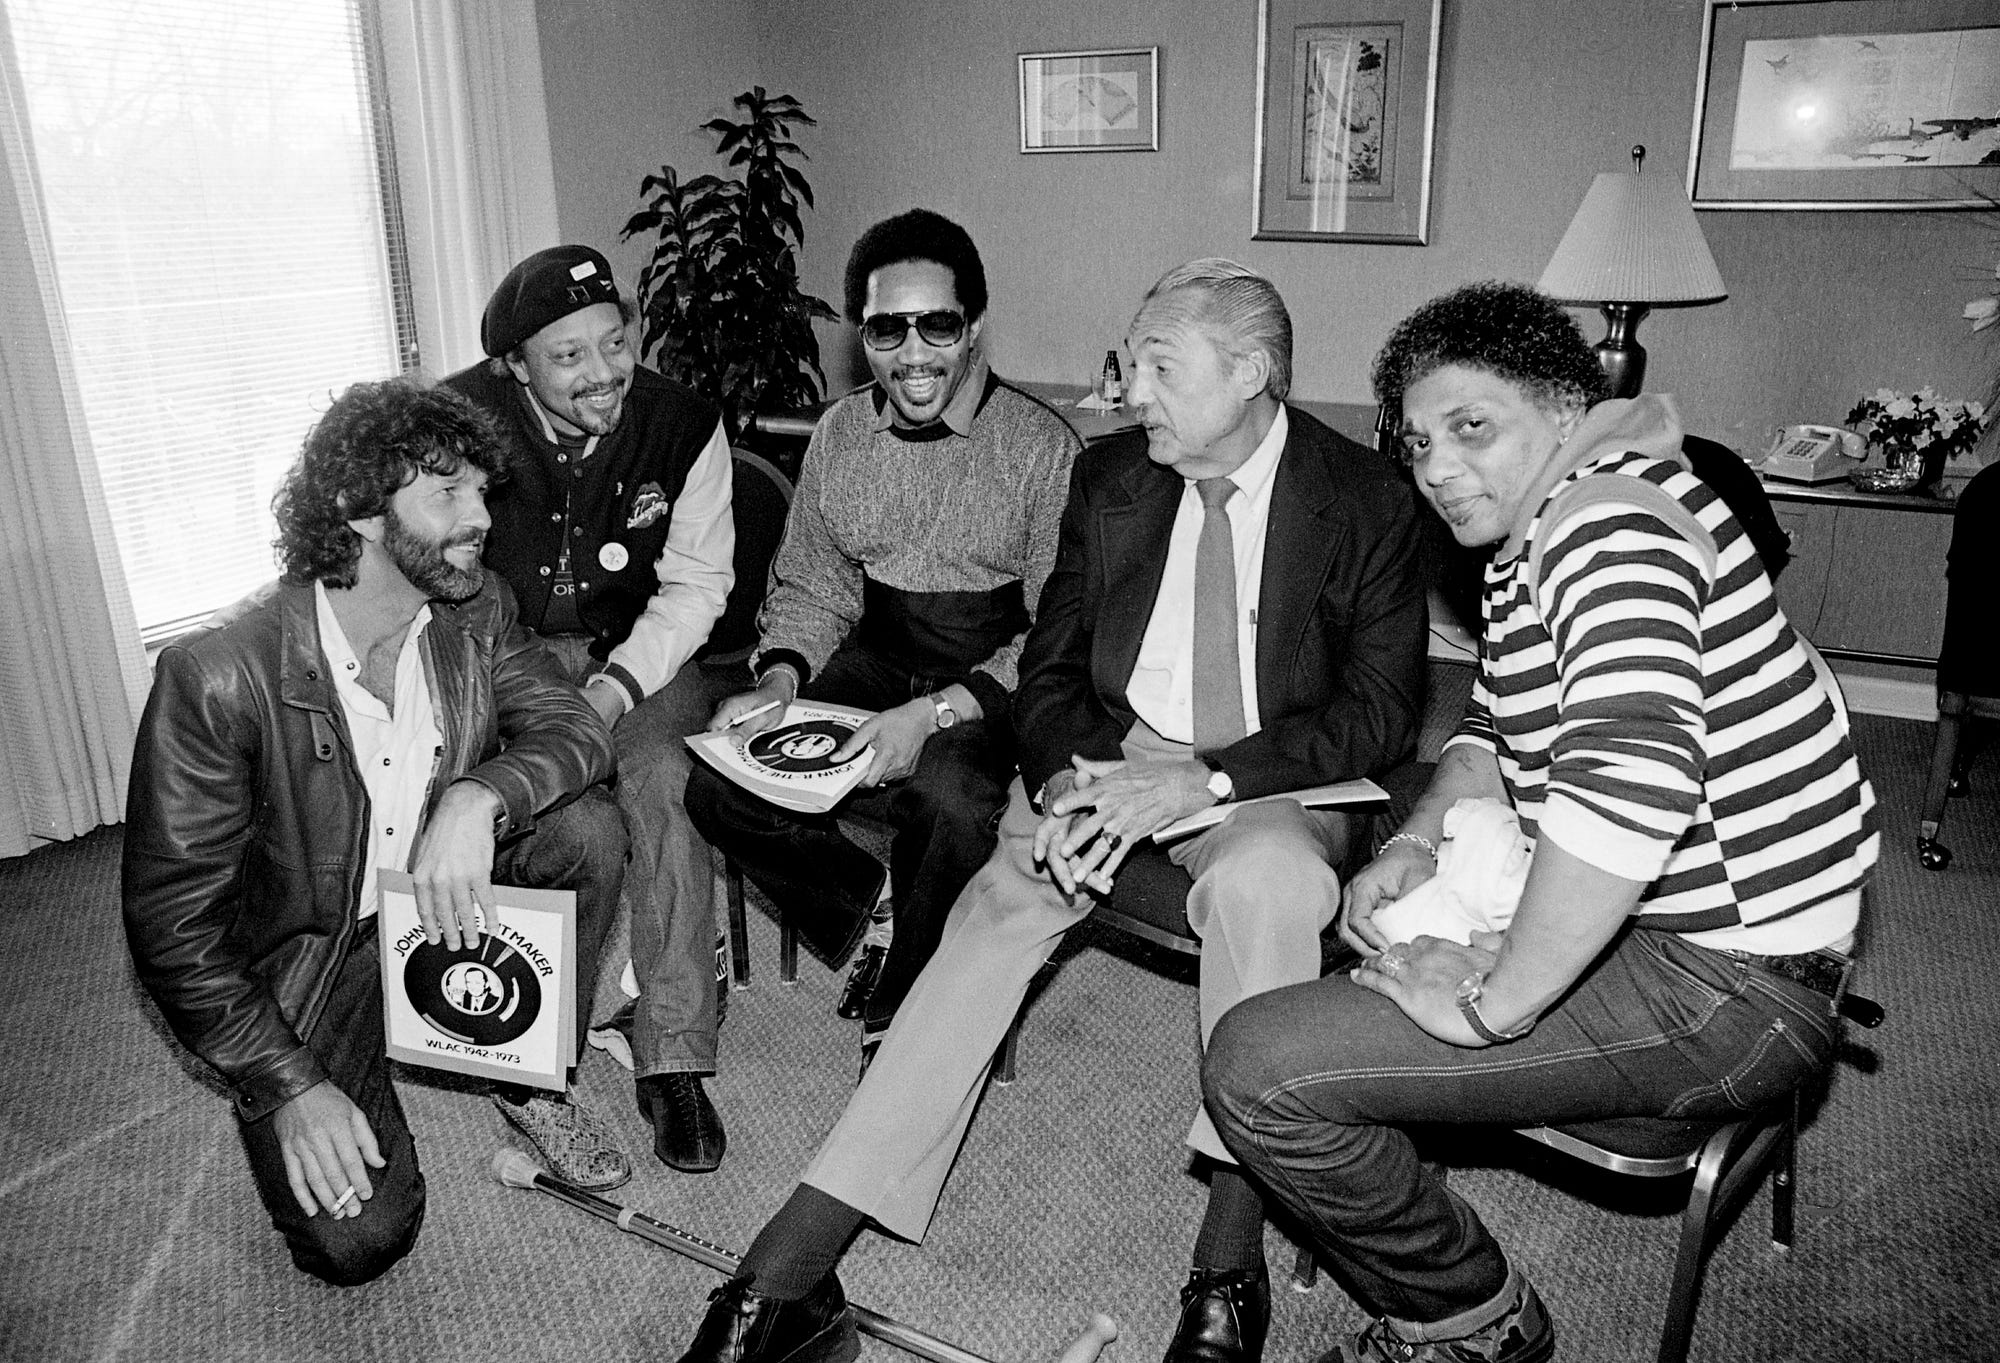 """Veteran WLAC rhythm & blues deejay Hoss Allen, second from right, begins planning the star-studded March 26 Opry House concert that will benefit his cancer-stricken radio brother John R. (Richbourg) March 6, 1985. Among the celebrities who joined """"The Hossman"""" at the Spence Manor are Tony Joe White, left, Art Neville, Bobby Jones and Aaron Neville, all of whom were aided by John R.'s pioneering broadcasts of soul sounds."""